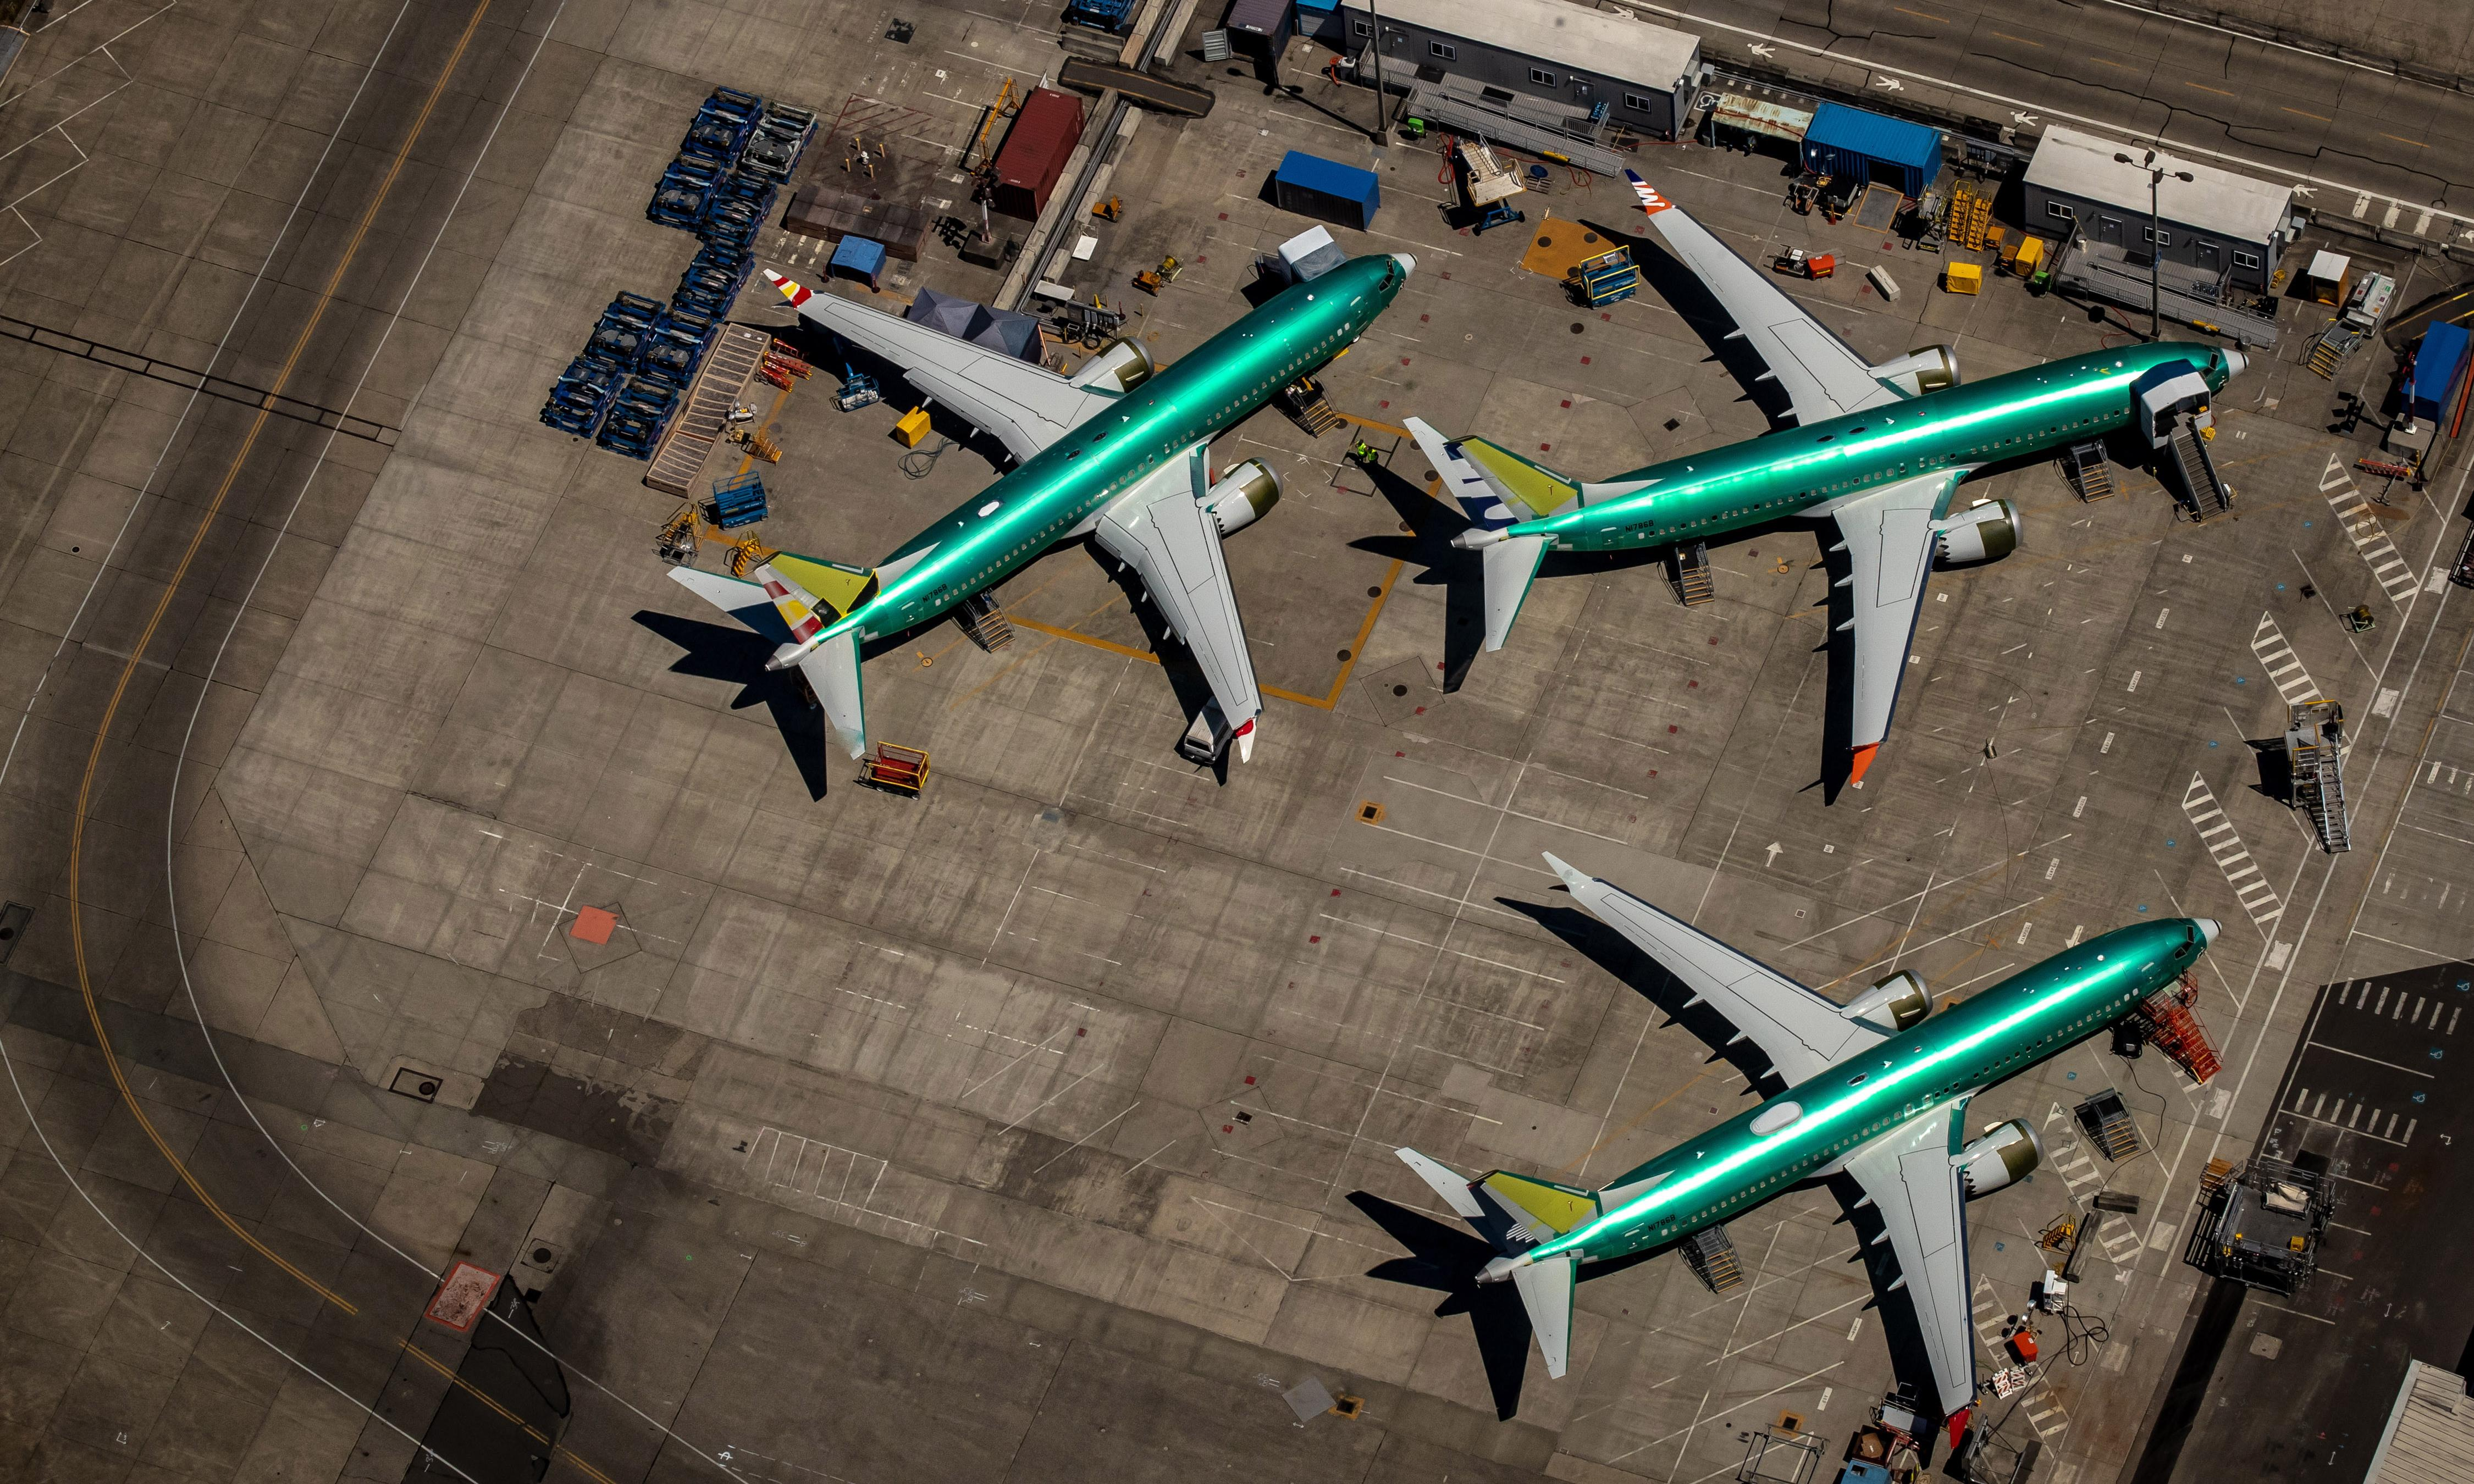 Boeing says it could halt production of 737 Max after grounding